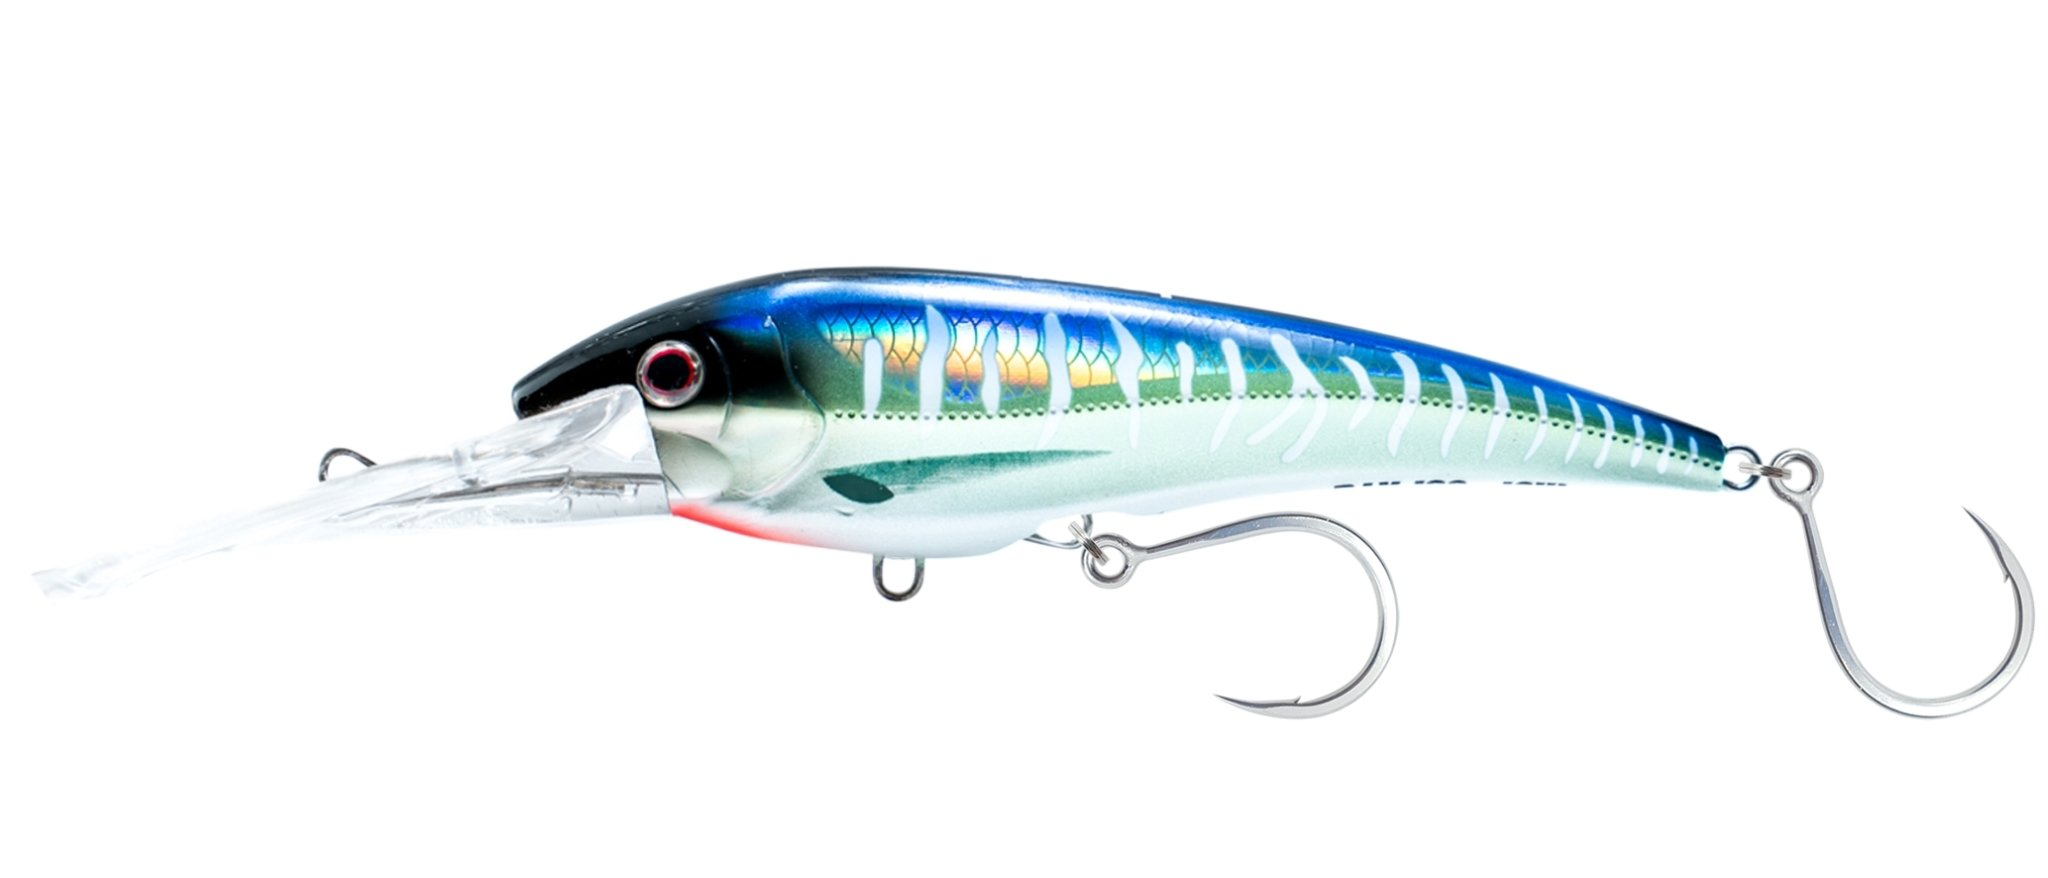 Trolling Lure- Nomad DTX Minnow 200MM/40ft - The Fishermans Hut